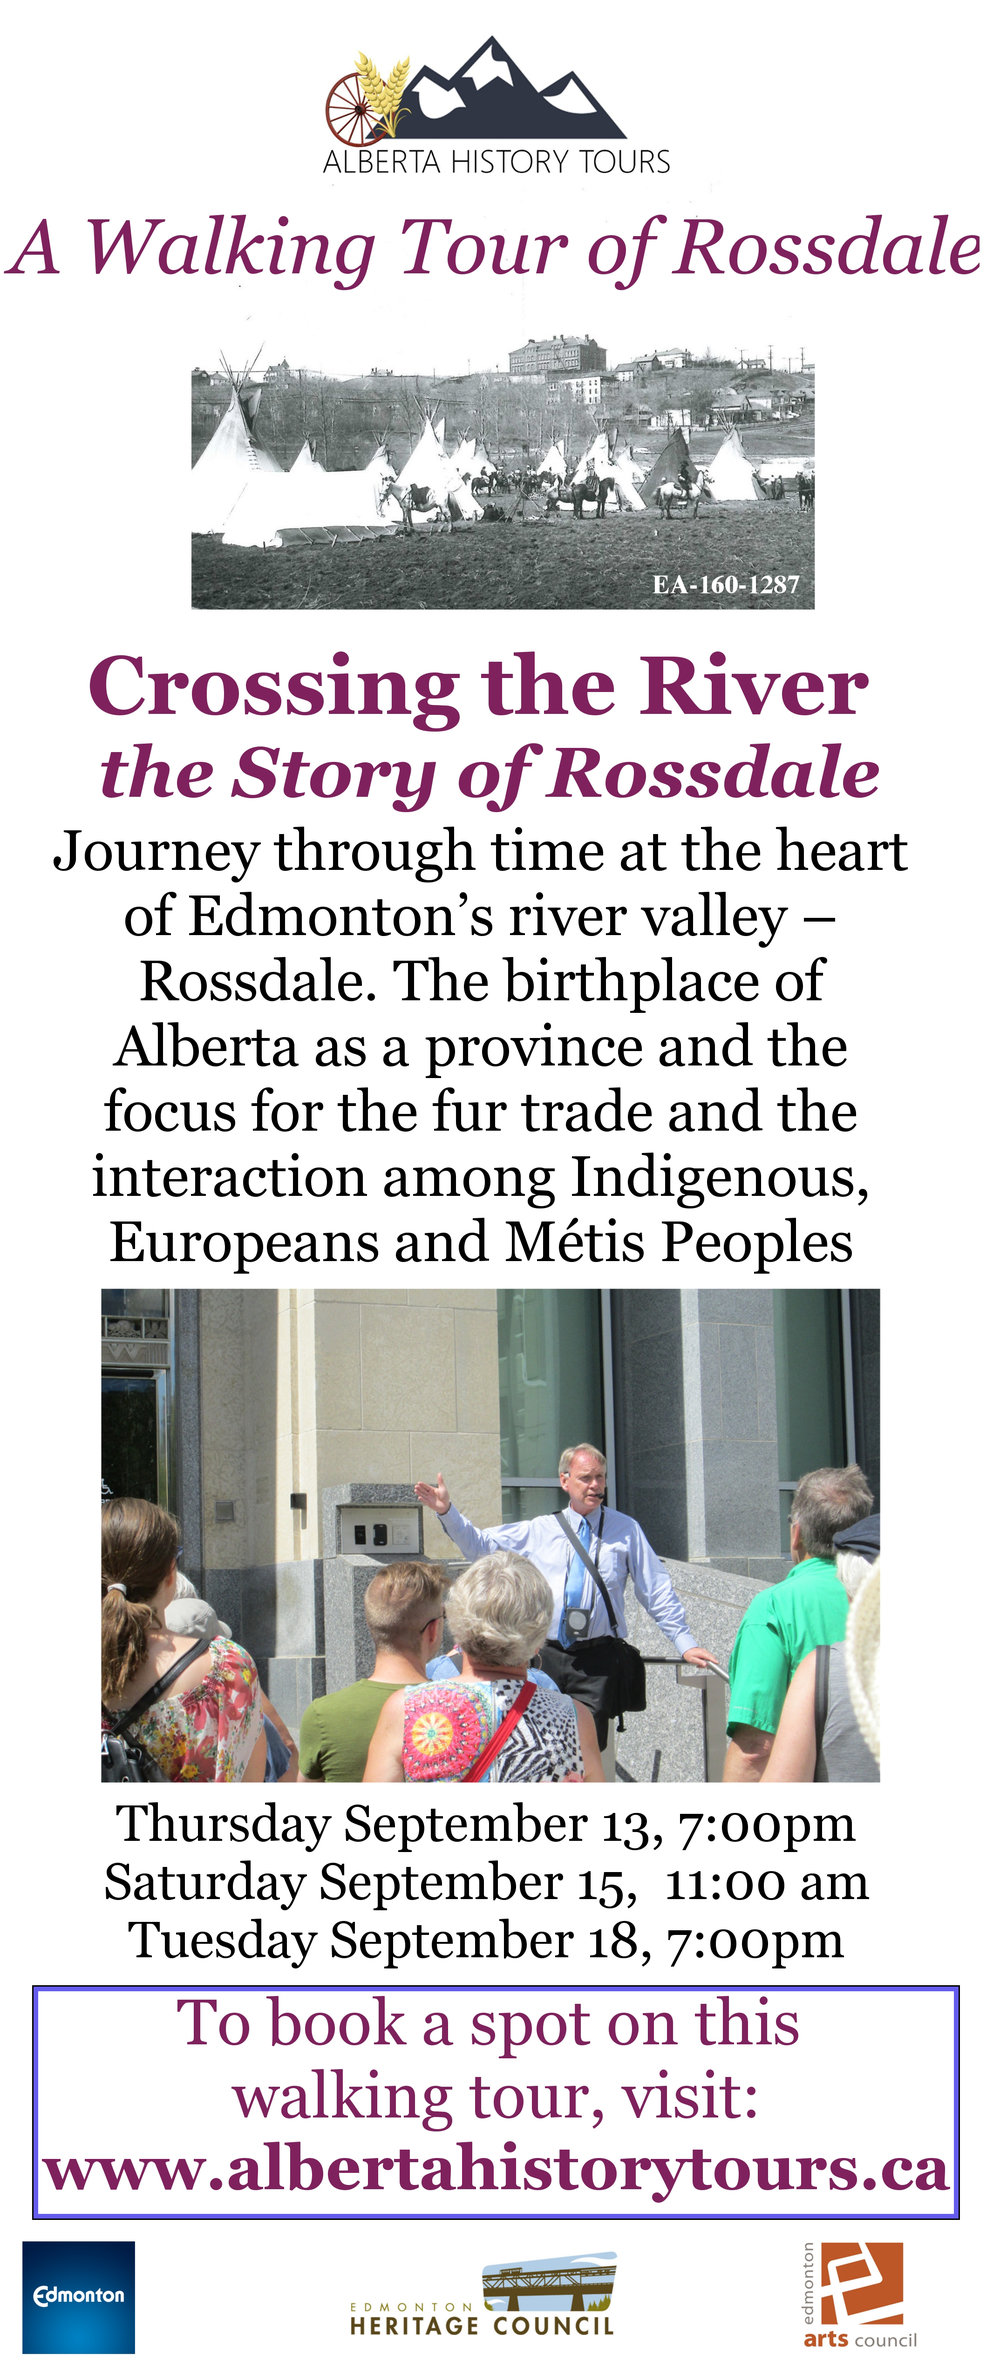 Alberta History Tour Flyer 1 UP.jpg